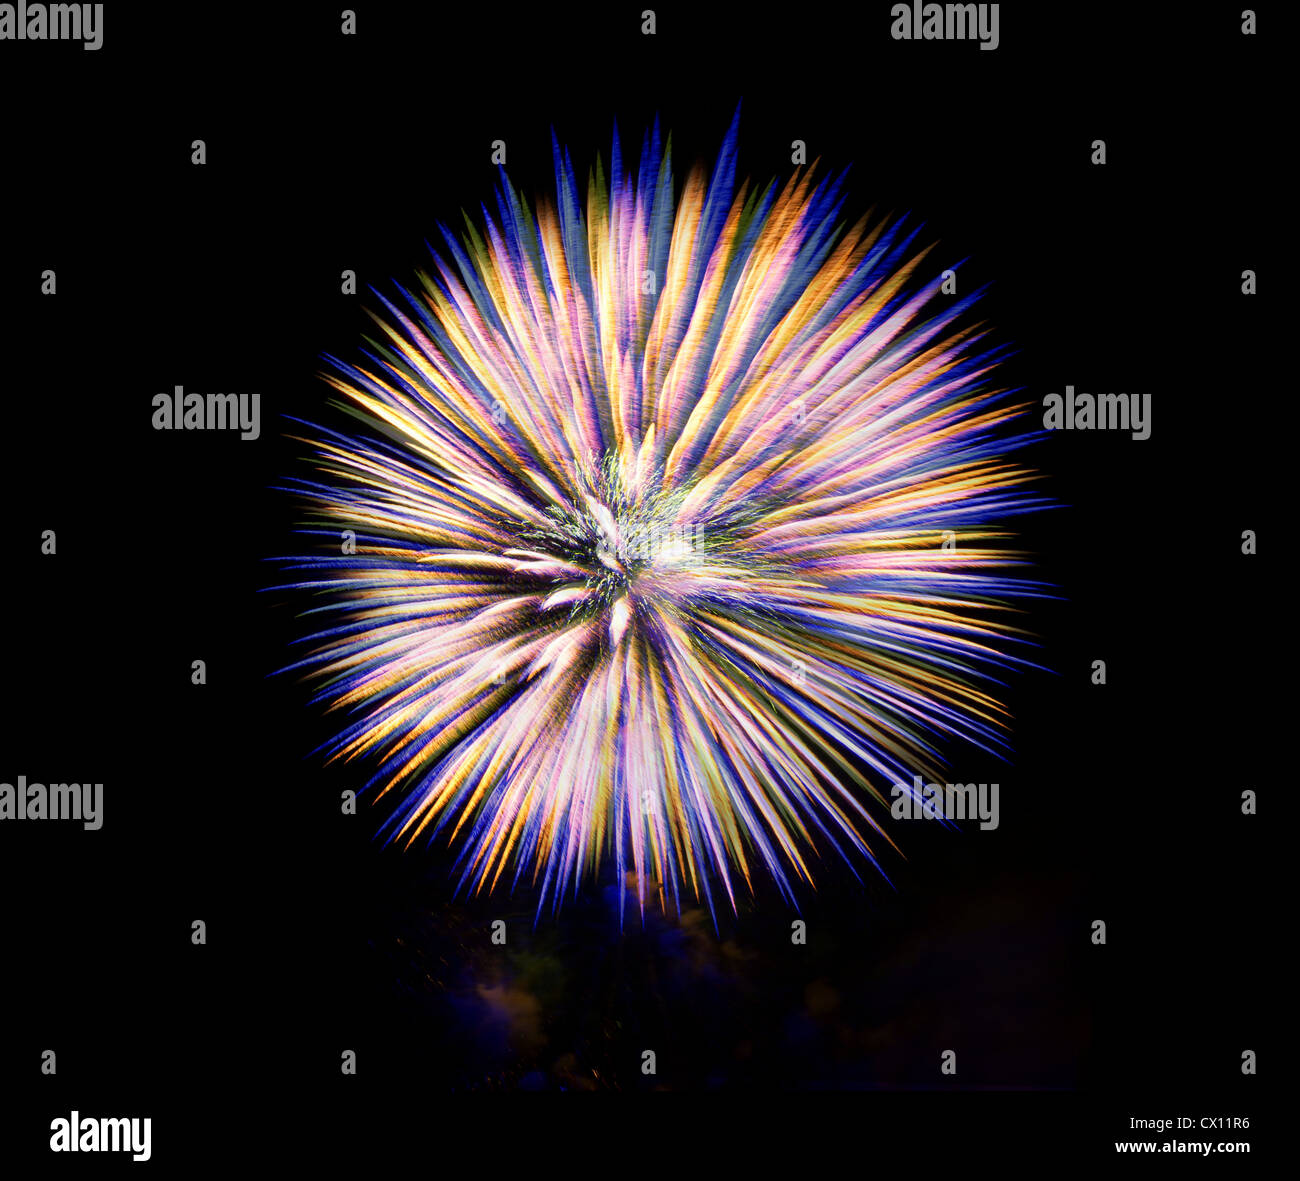 Firework in the sky - Stock Image